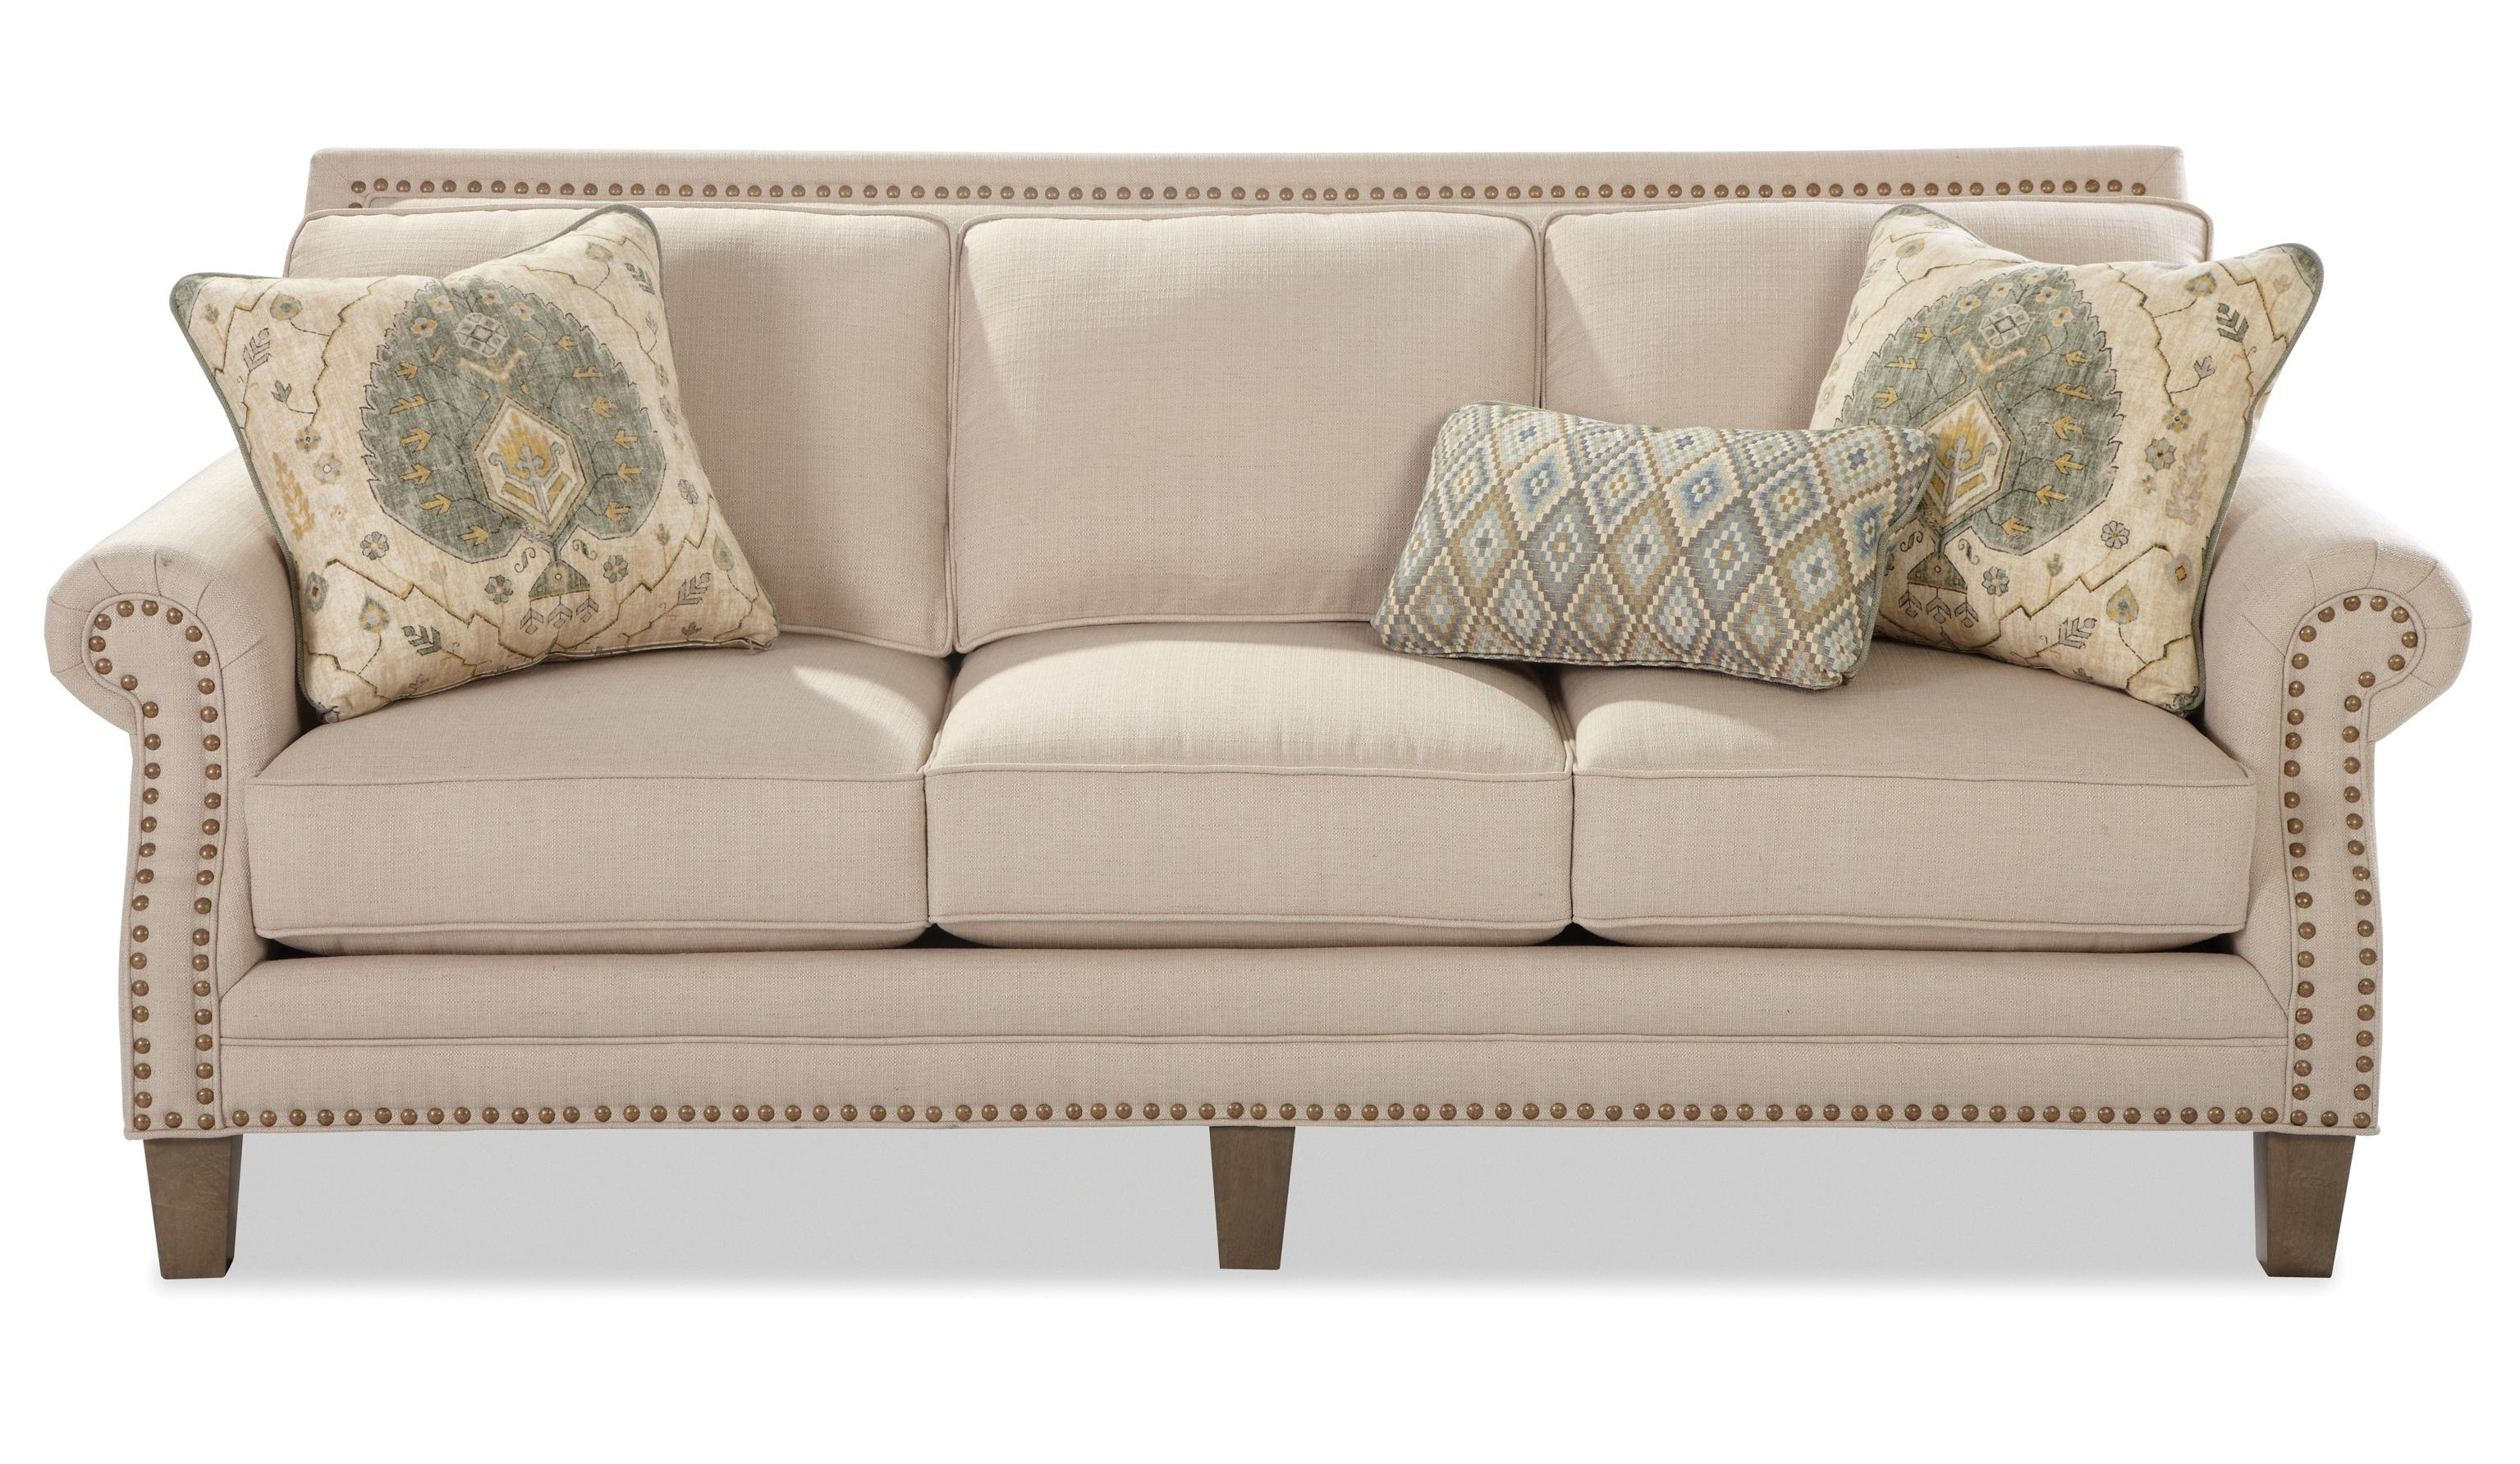 Craftmaster 747 Transitional Sofa with Brass Nailheads - Miskelly Furniture - Sofas